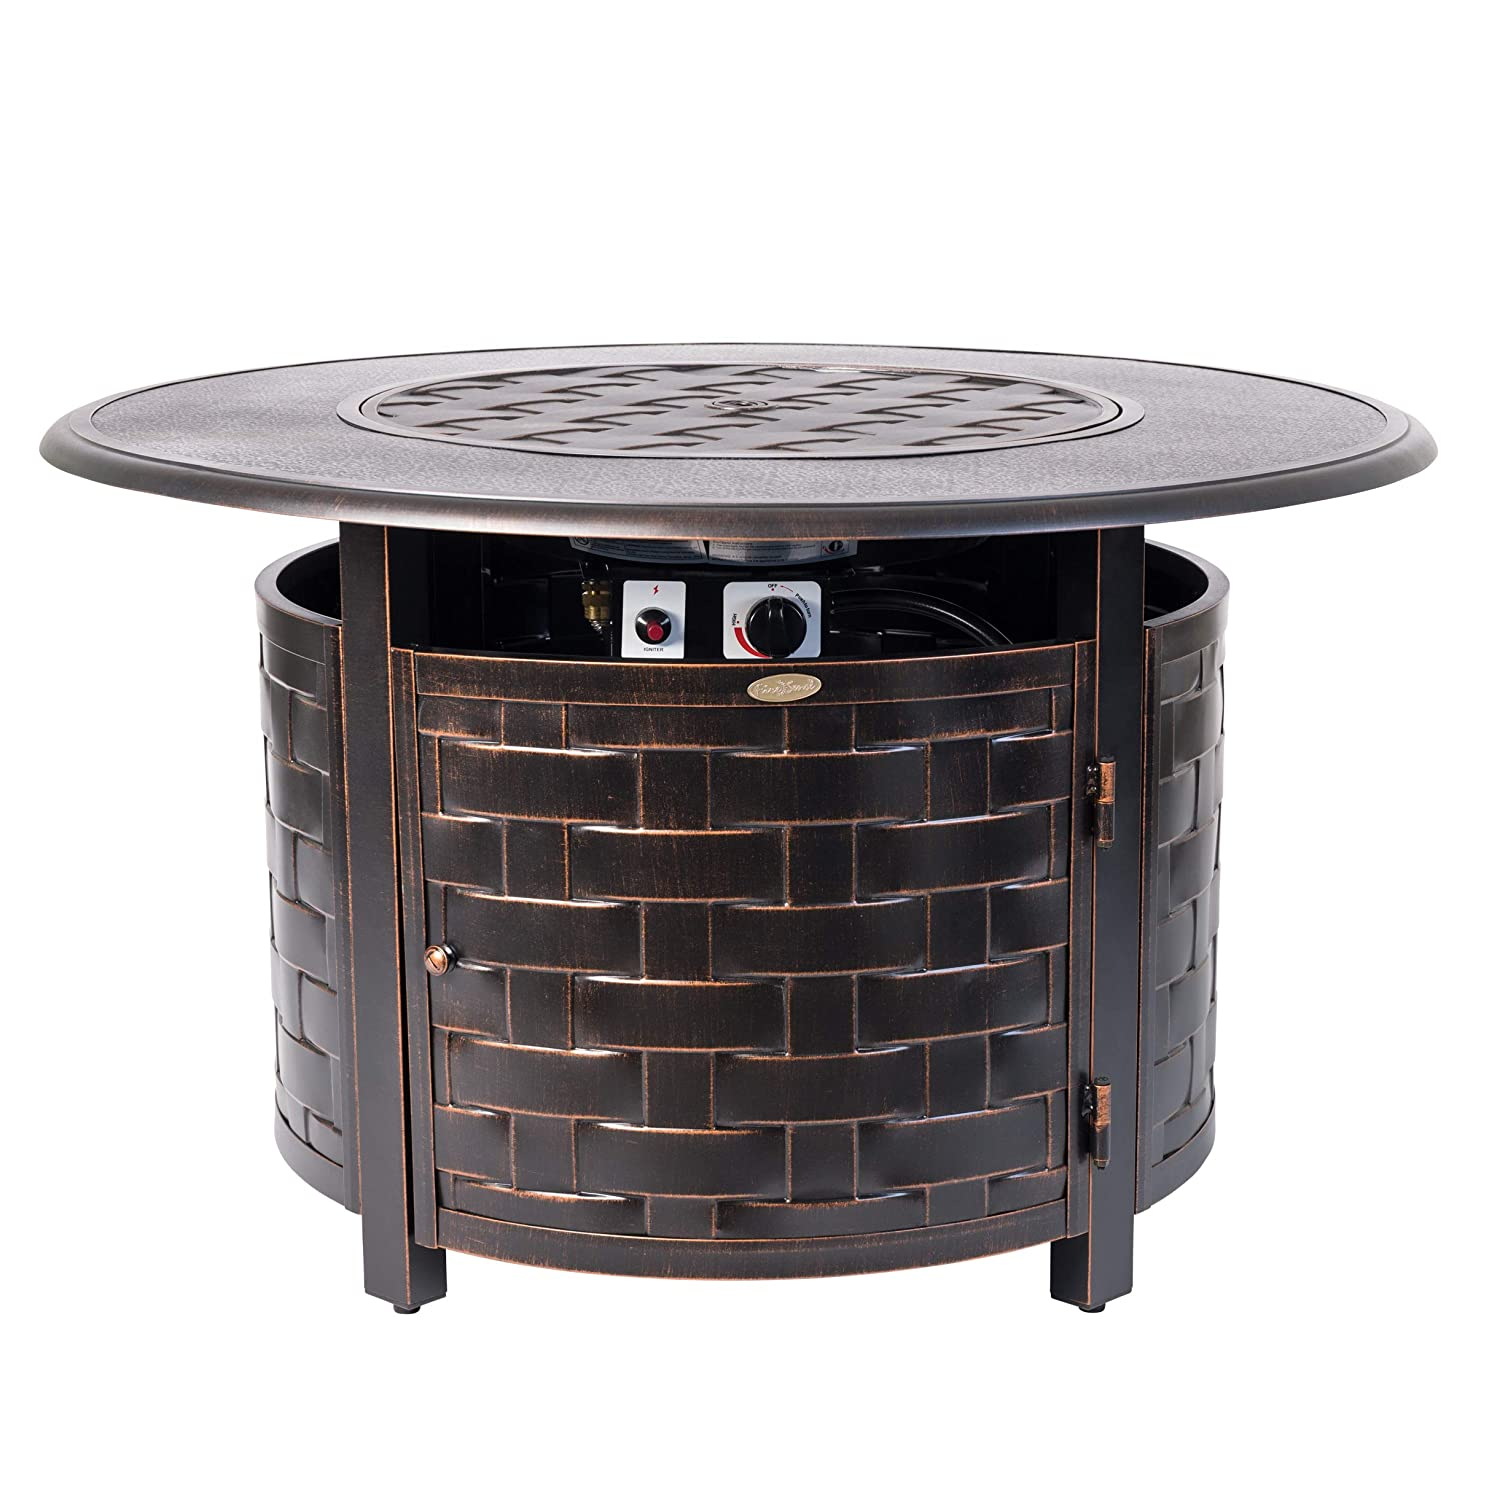 consumer reports best fire pits